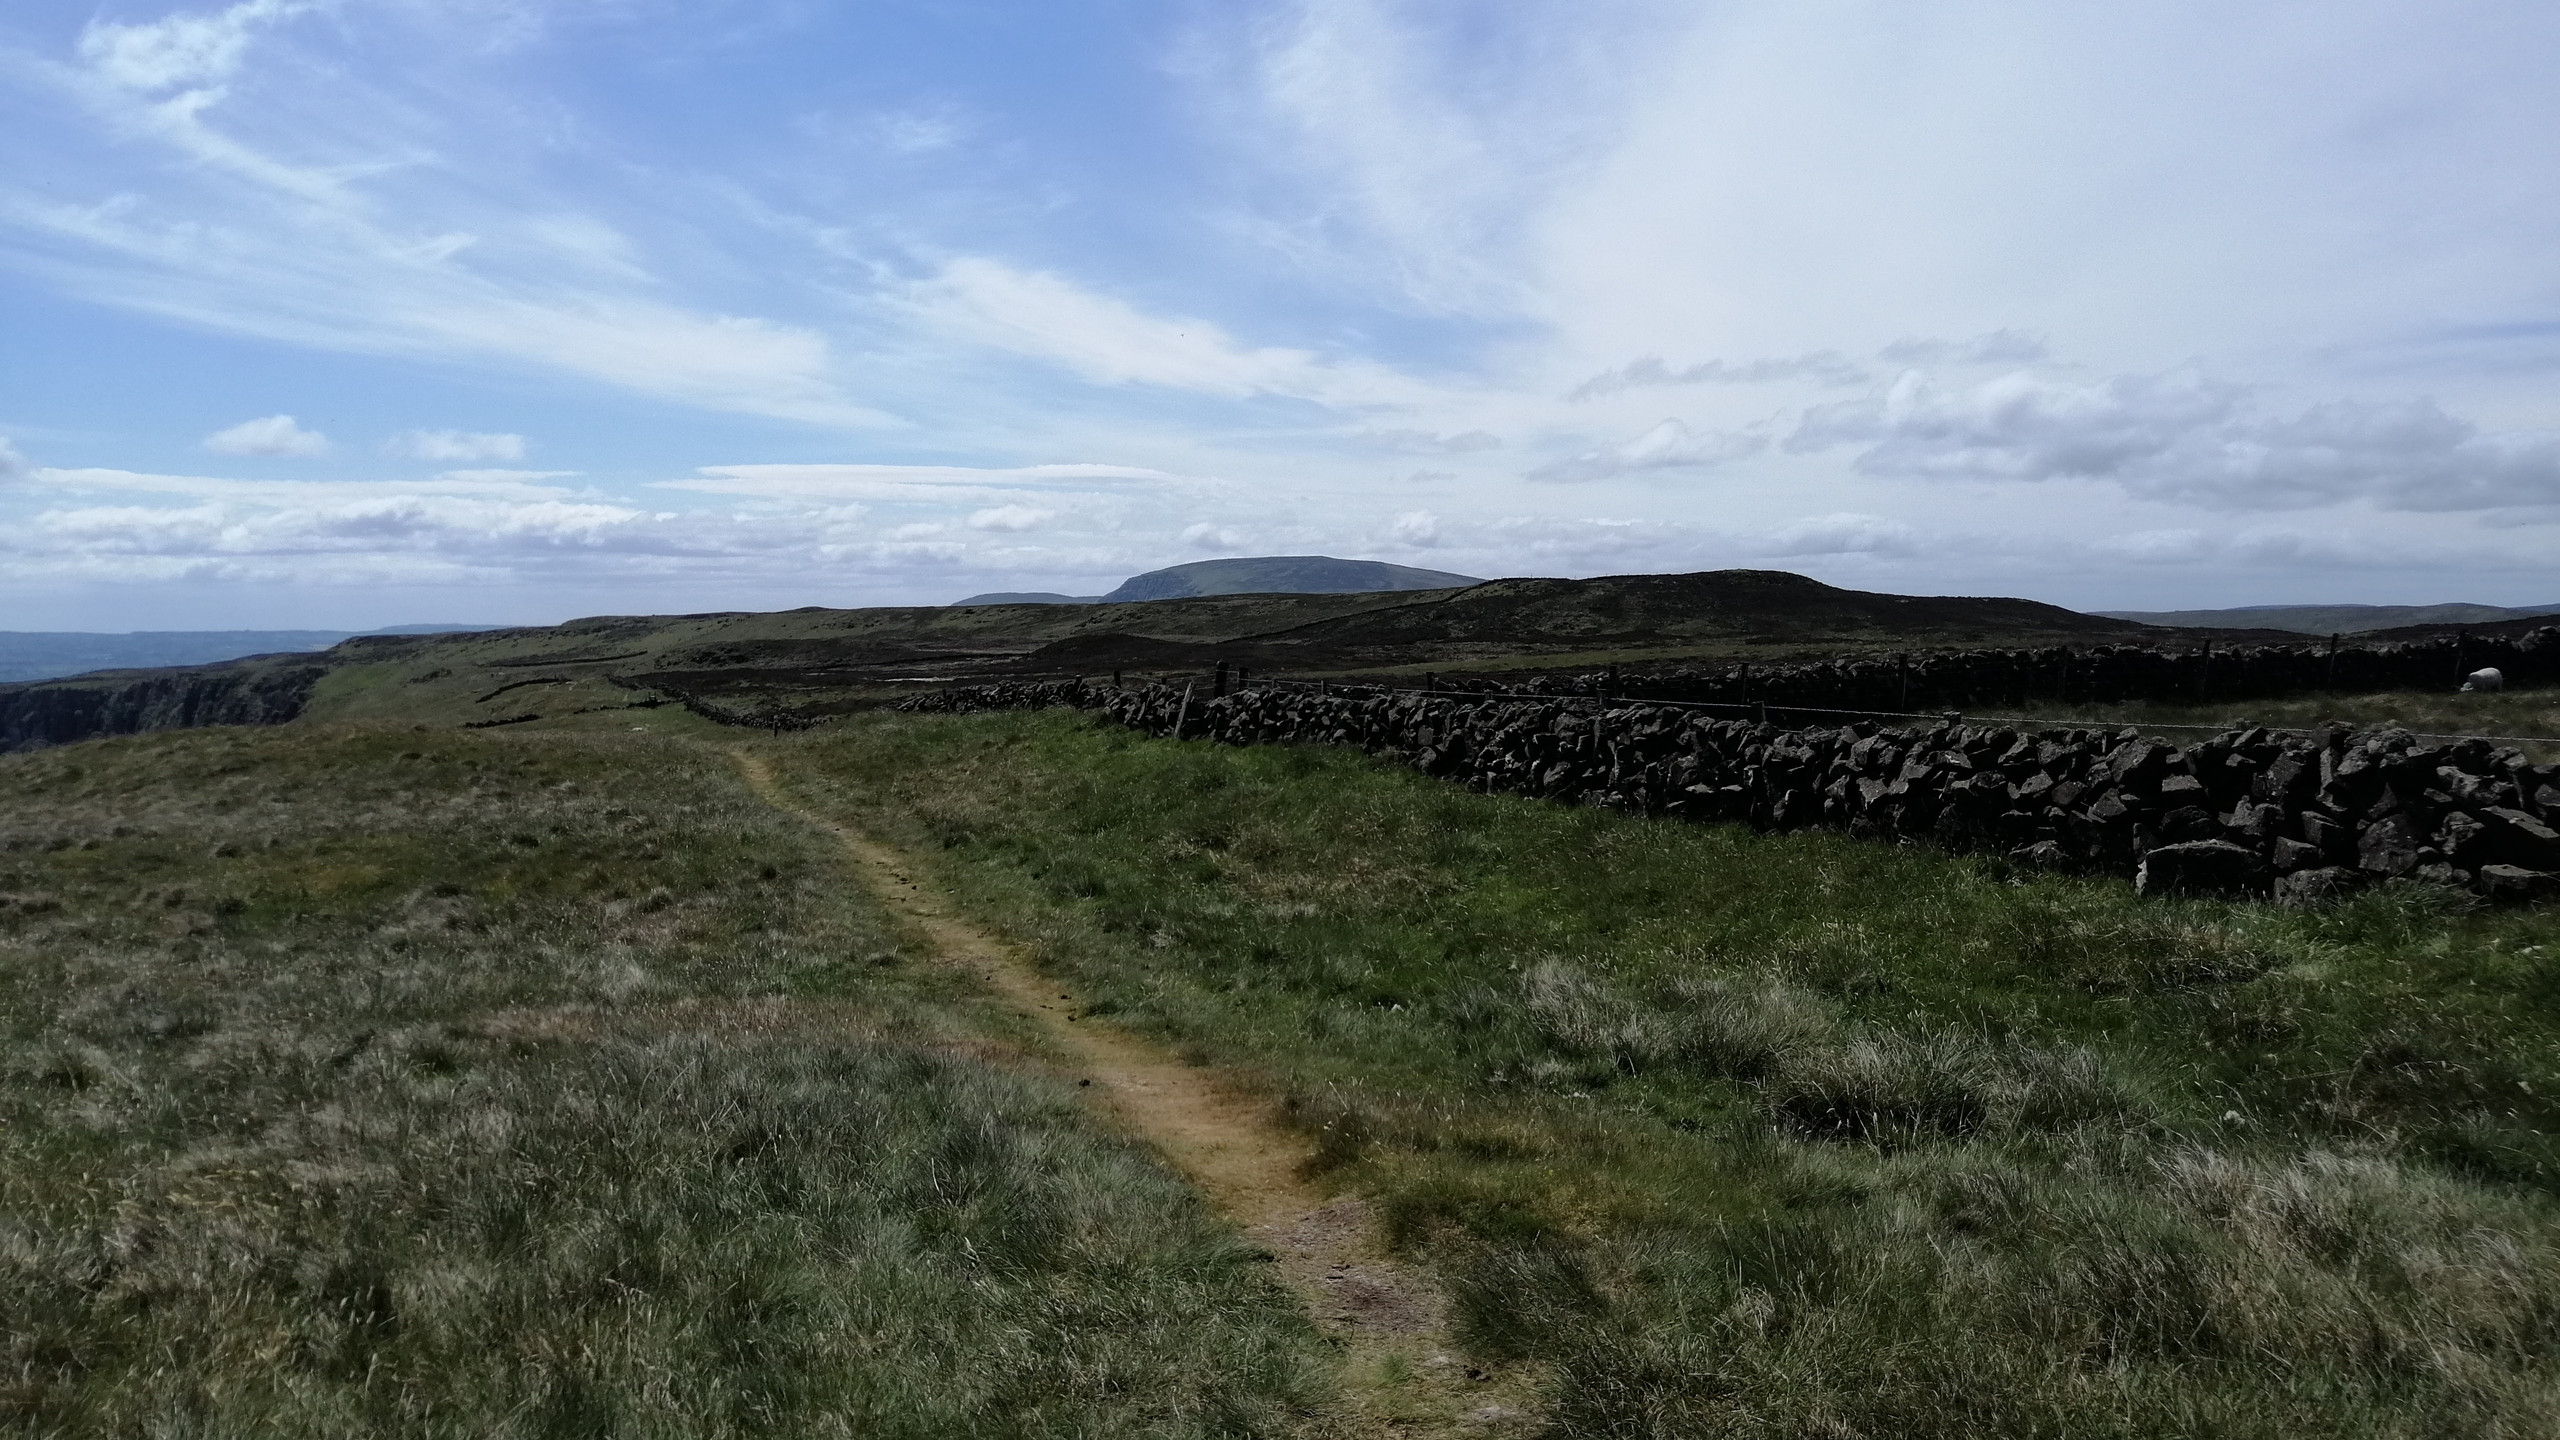 Ulster Way Trail over Sallagh